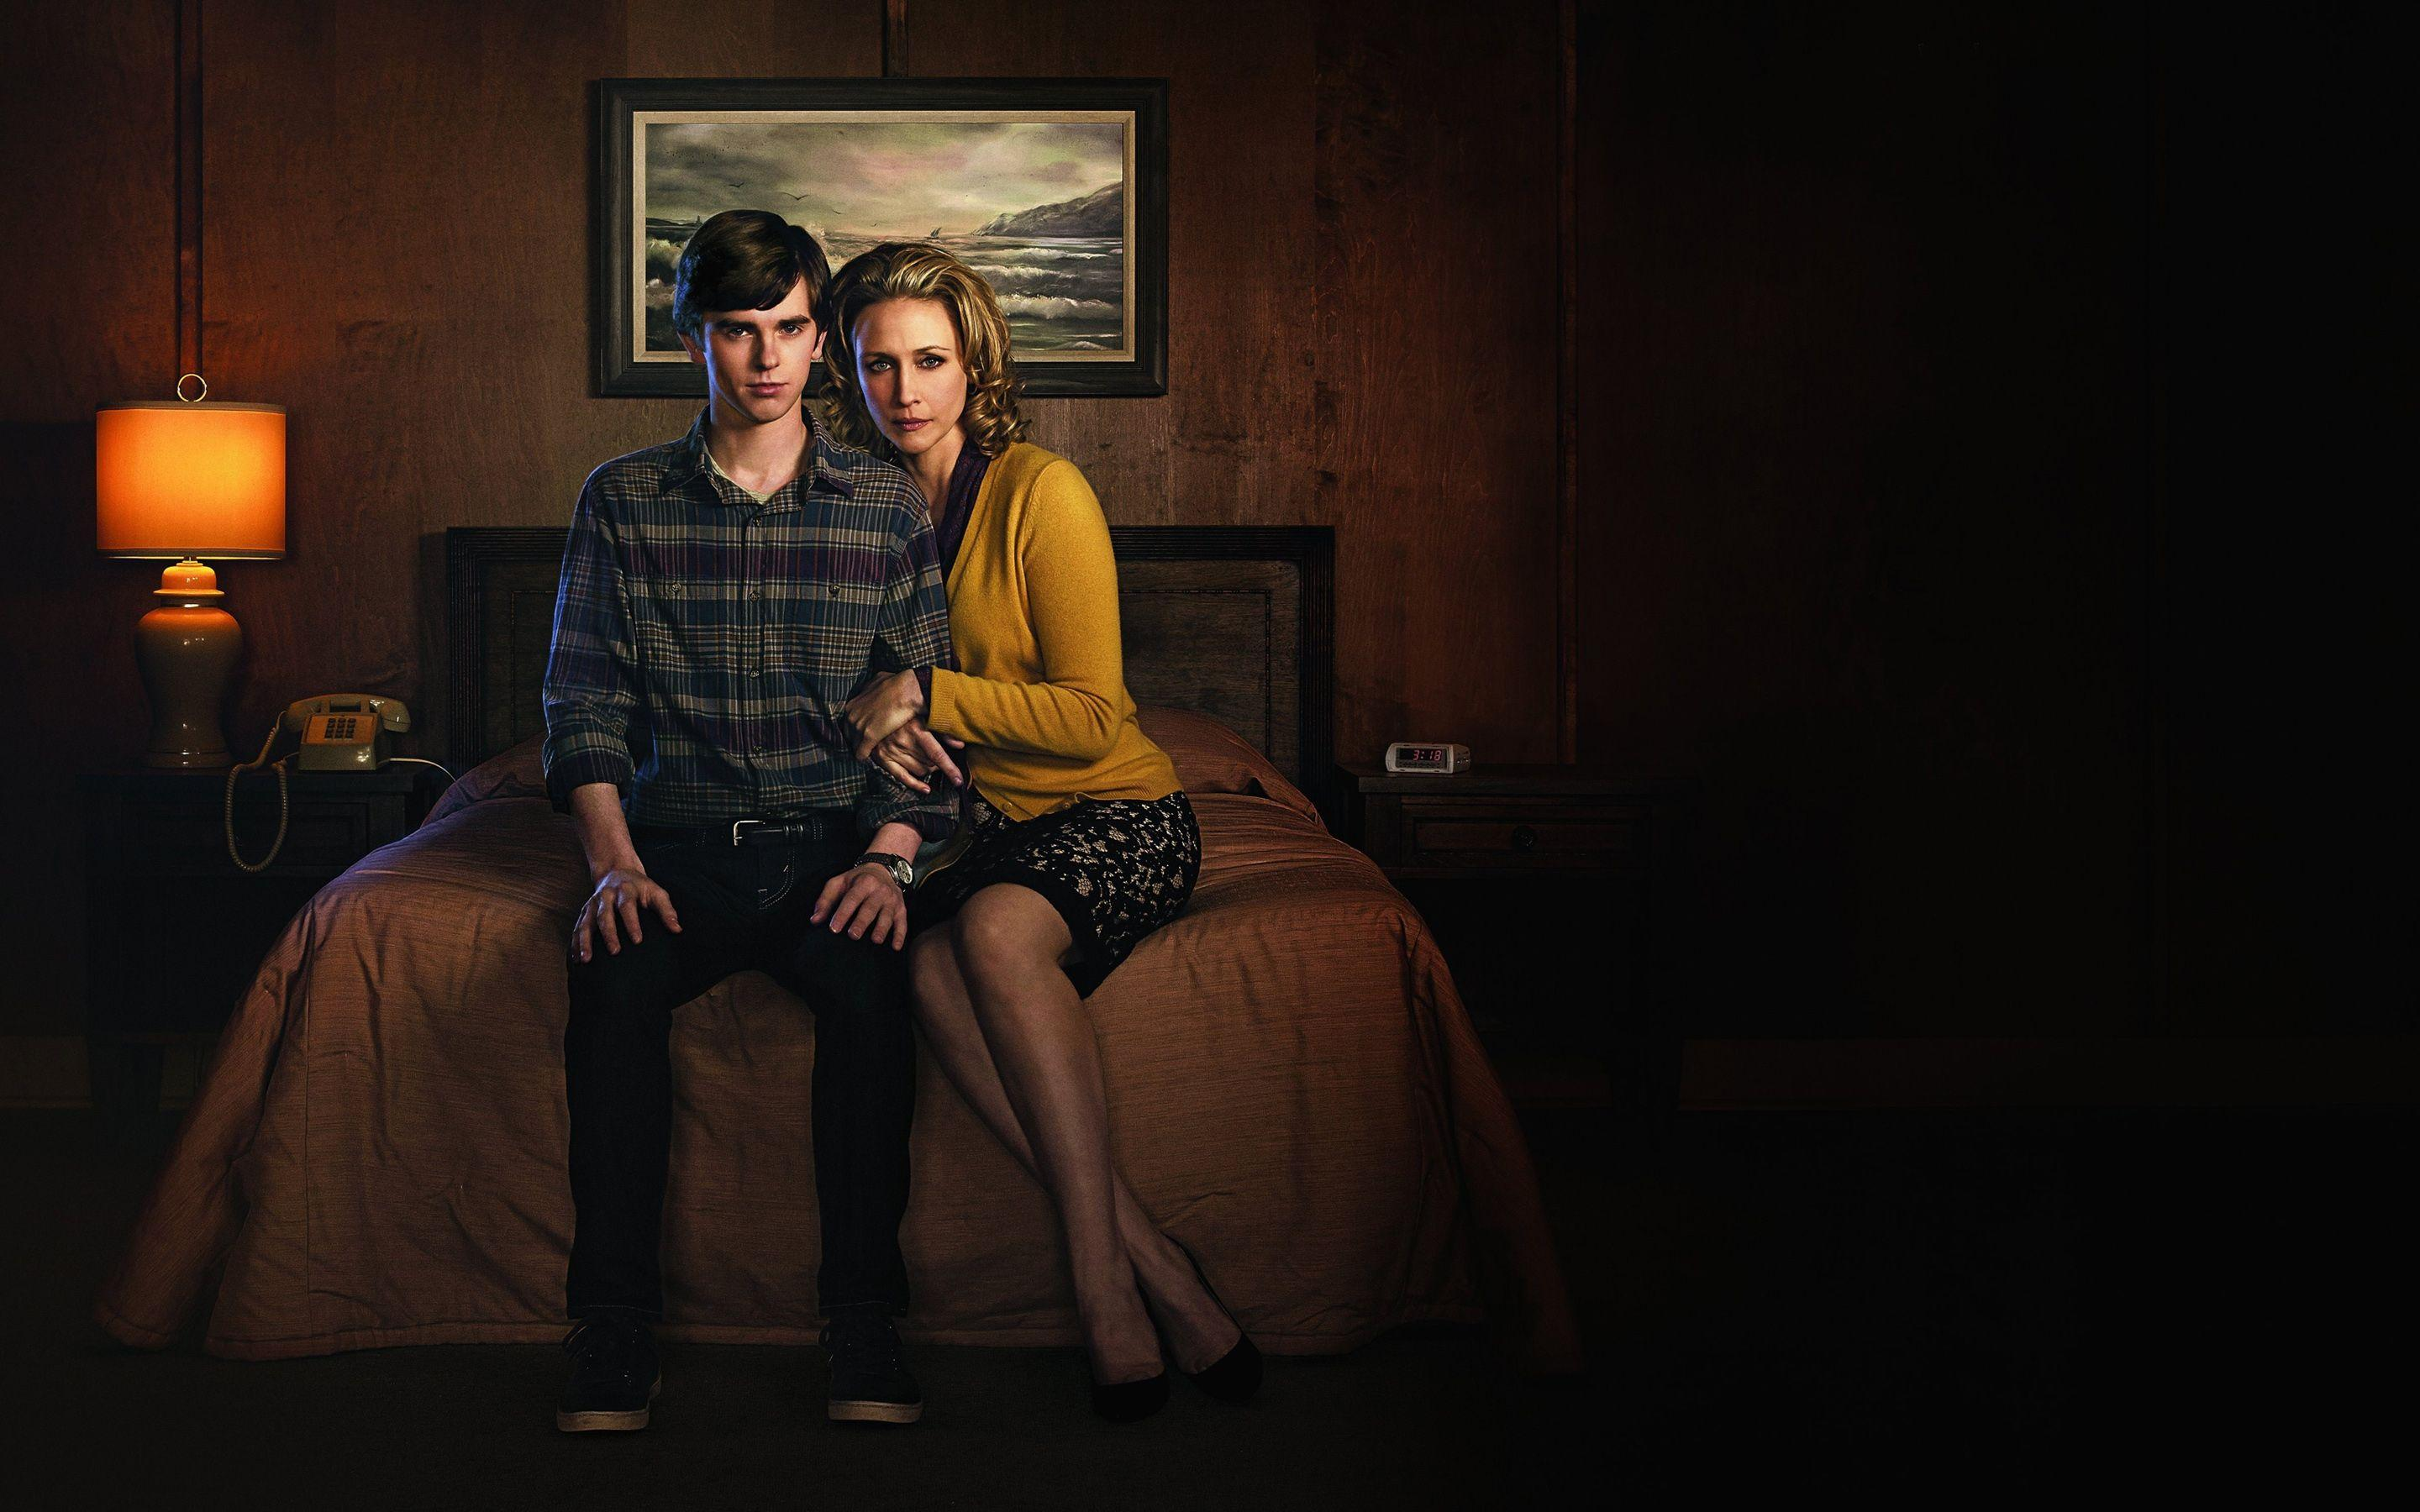 Bates Motel 2013 TV Series Wallpapers